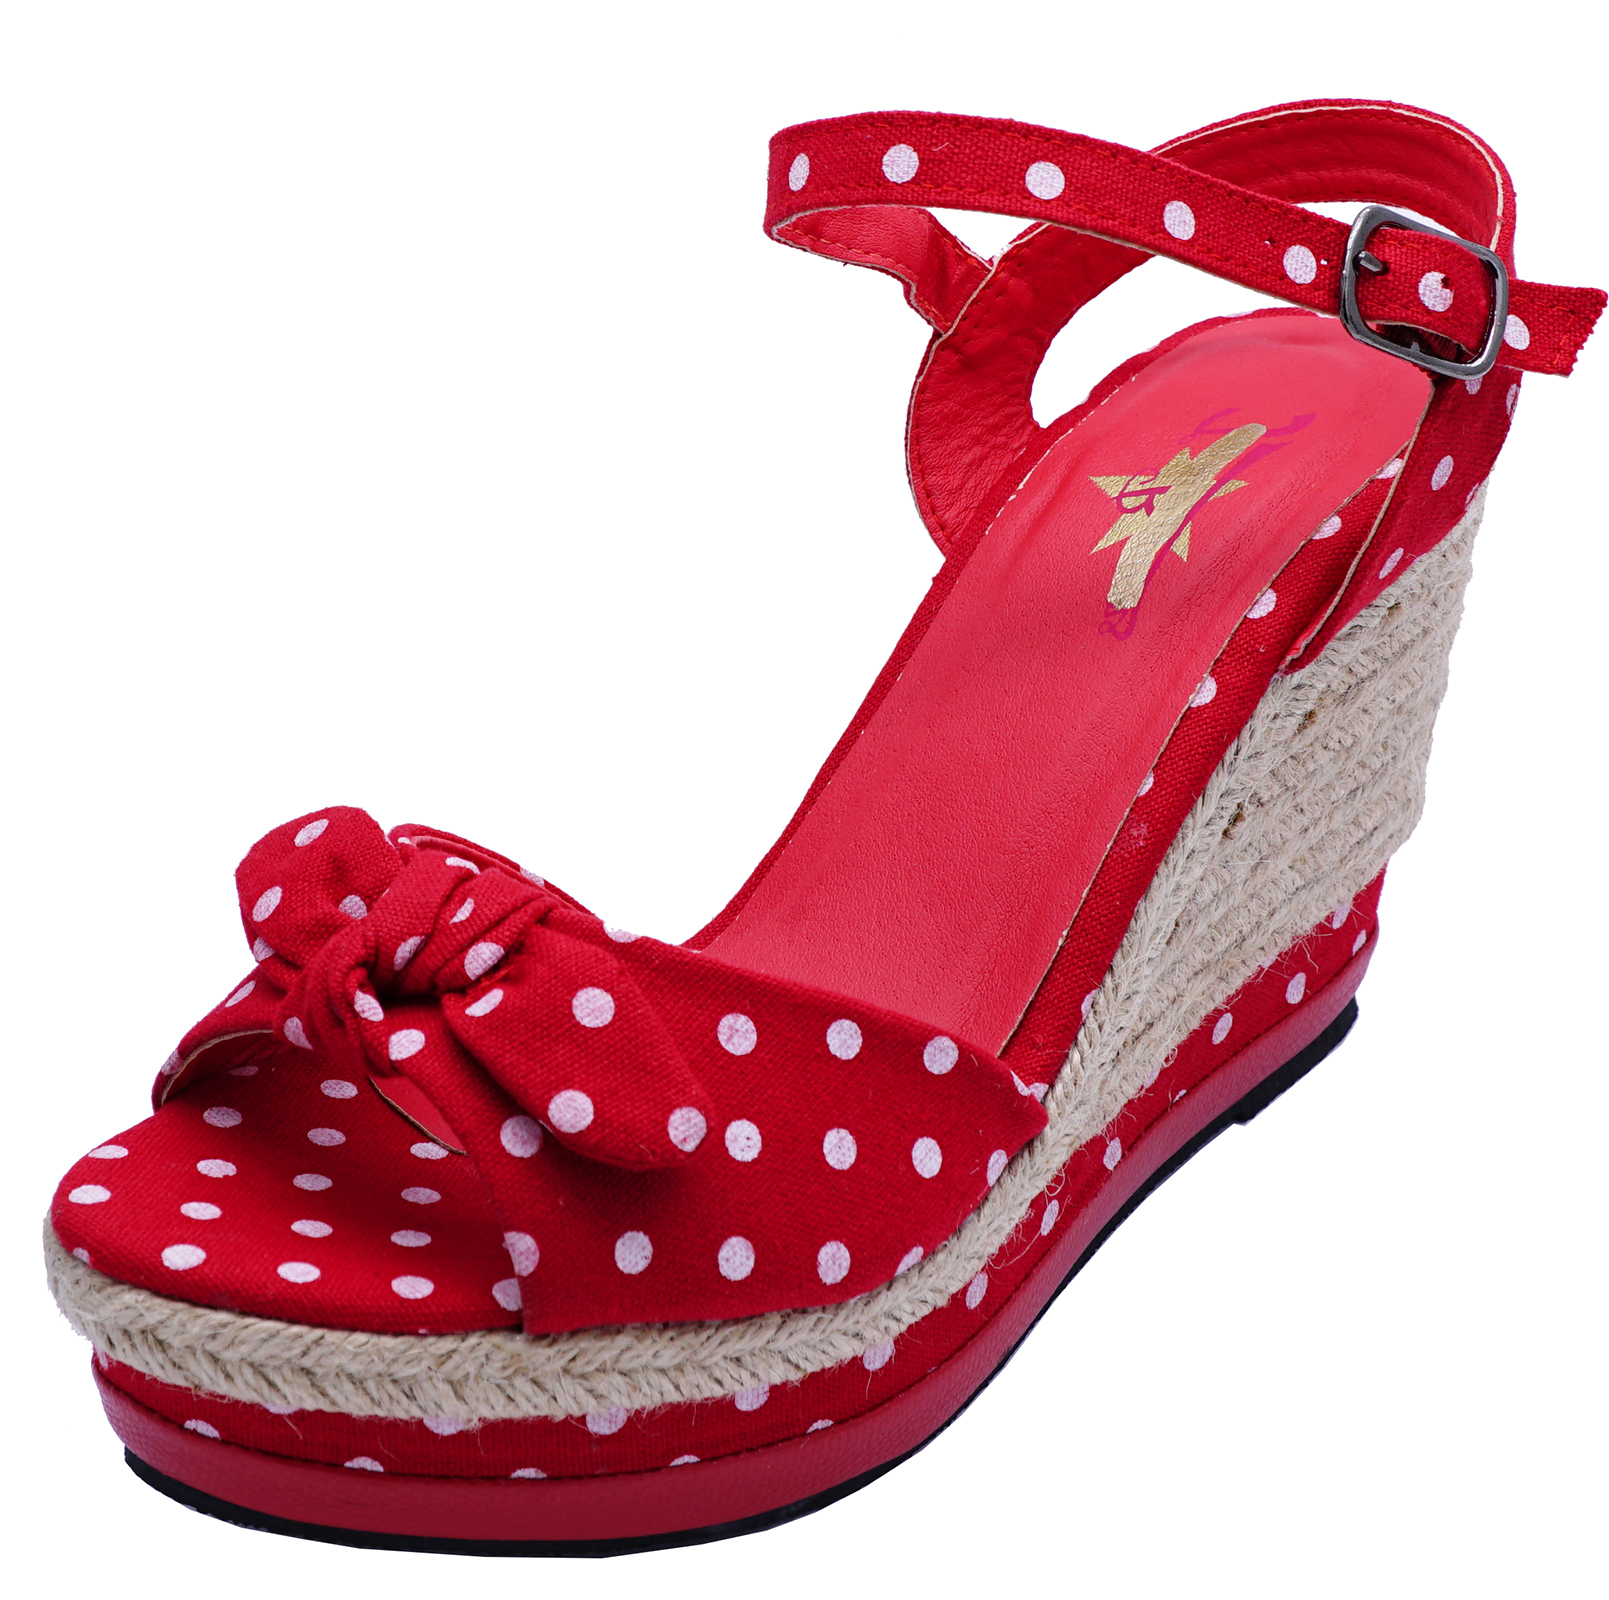 64e962bd15059 LADIES RED POLKA DOT ROCKABILLY OPEN-TOE COMFY WEDGES SANDALS SHOES ...